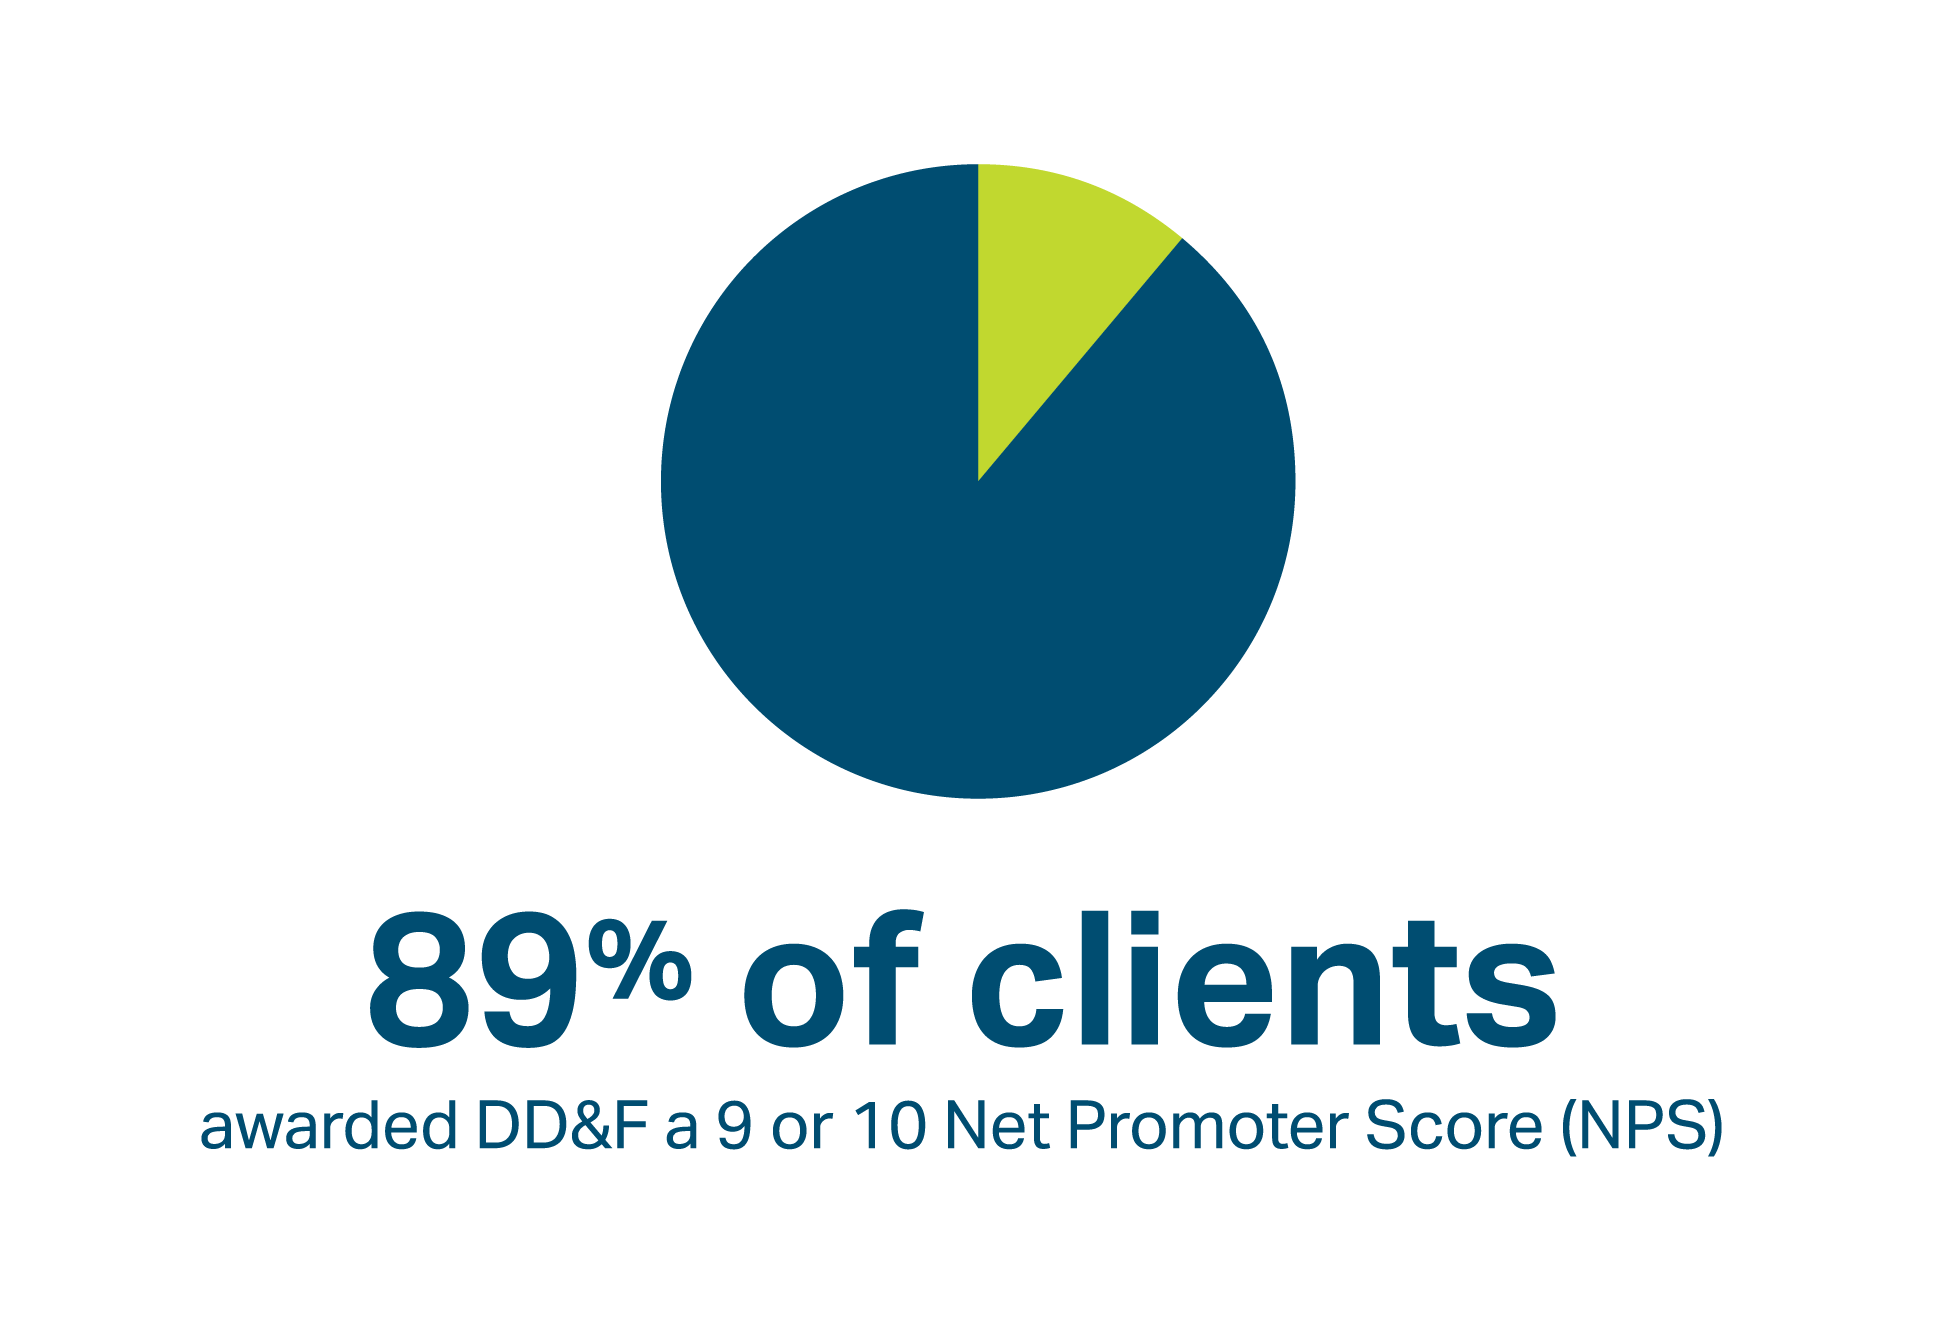 89% of clients awarded DD&F a 9 or 10 net promoter score (NPS)